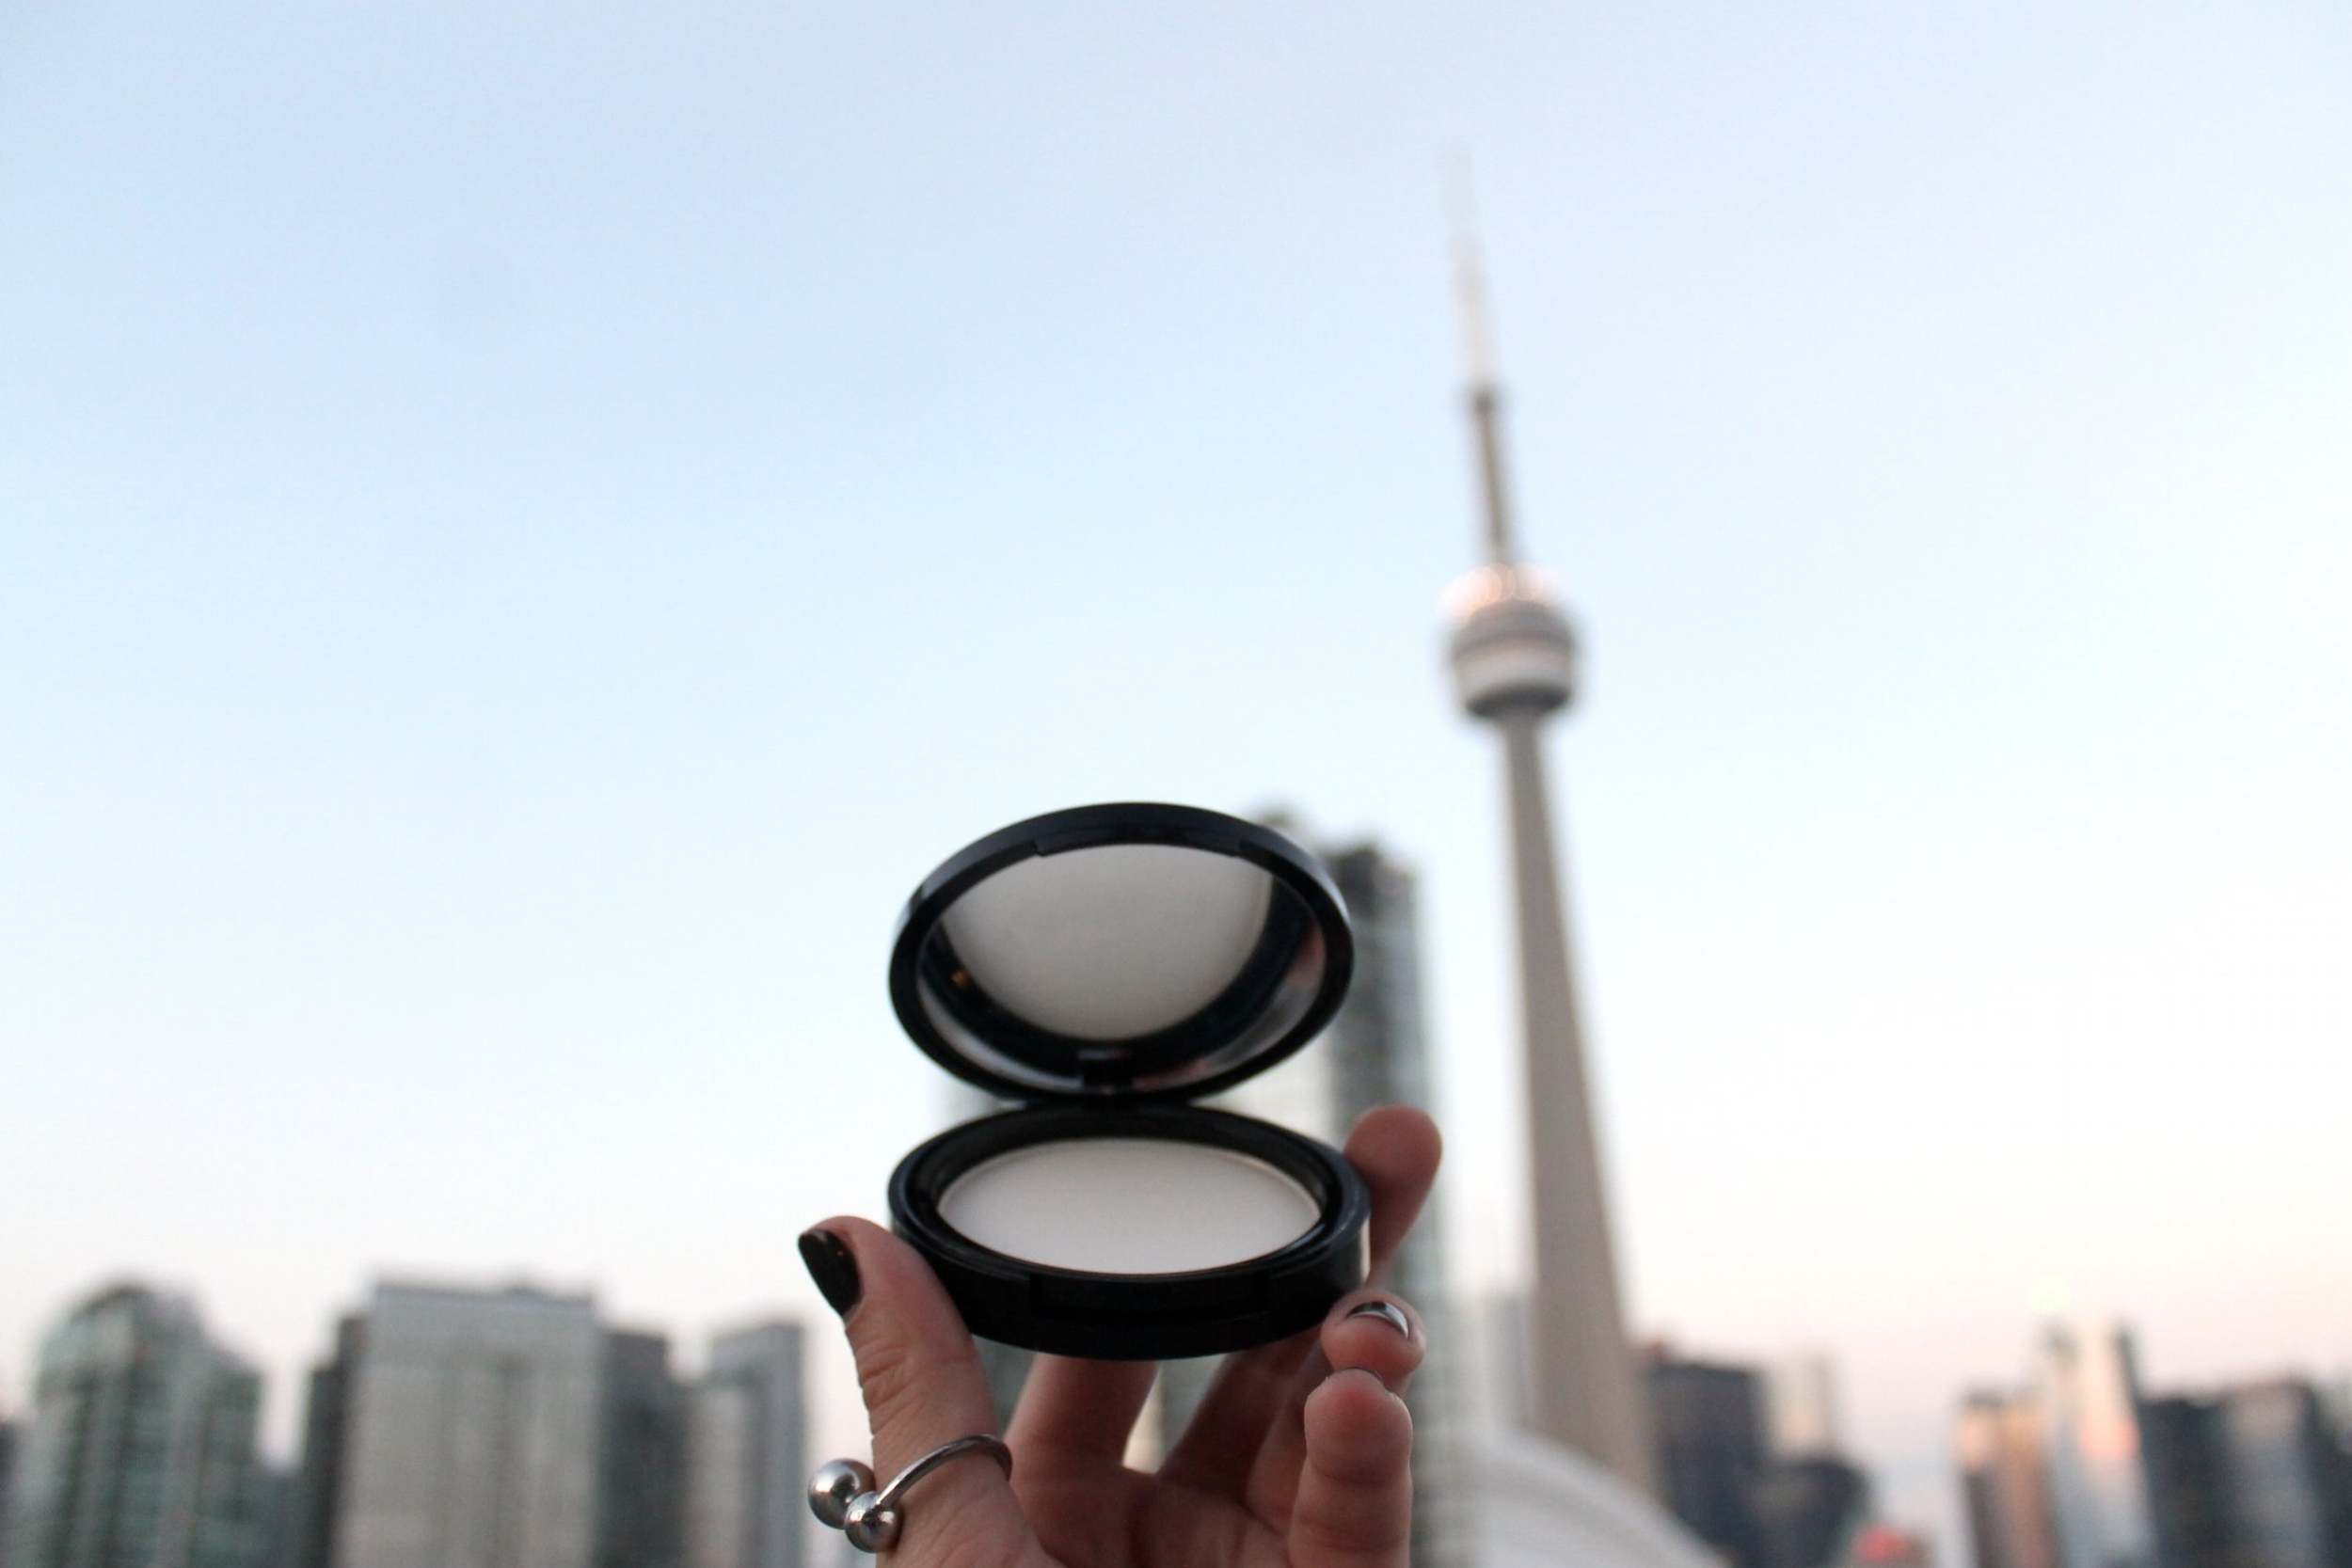 Living in Toronto, I'm always #Set2Go with my Dermablend Compact Setting Powder